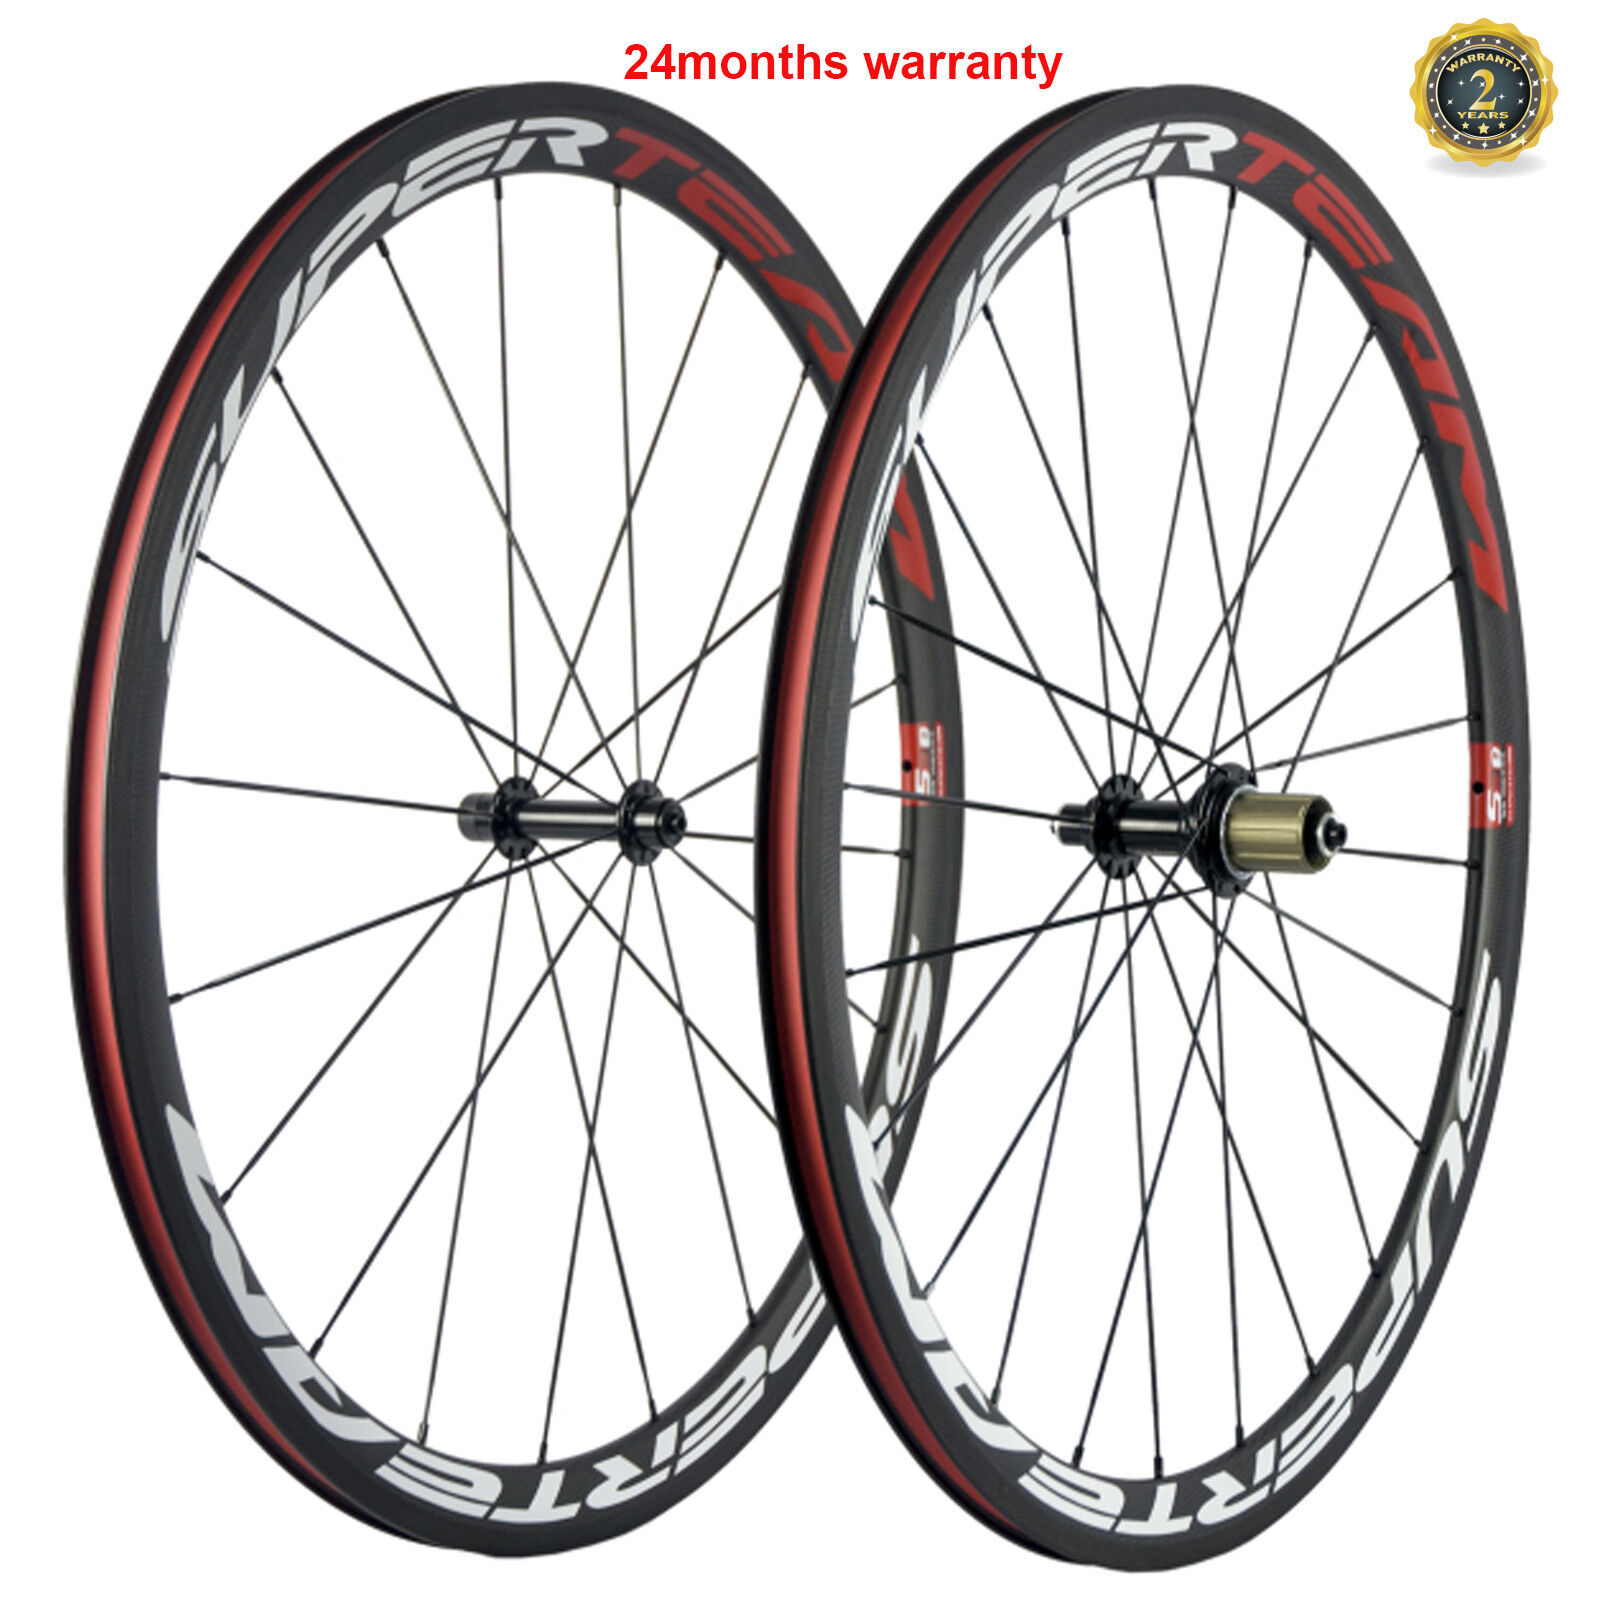 70C Karbonfiberhjul 38mm Carbon Bicycle Wheelset Clinger Road Cykel